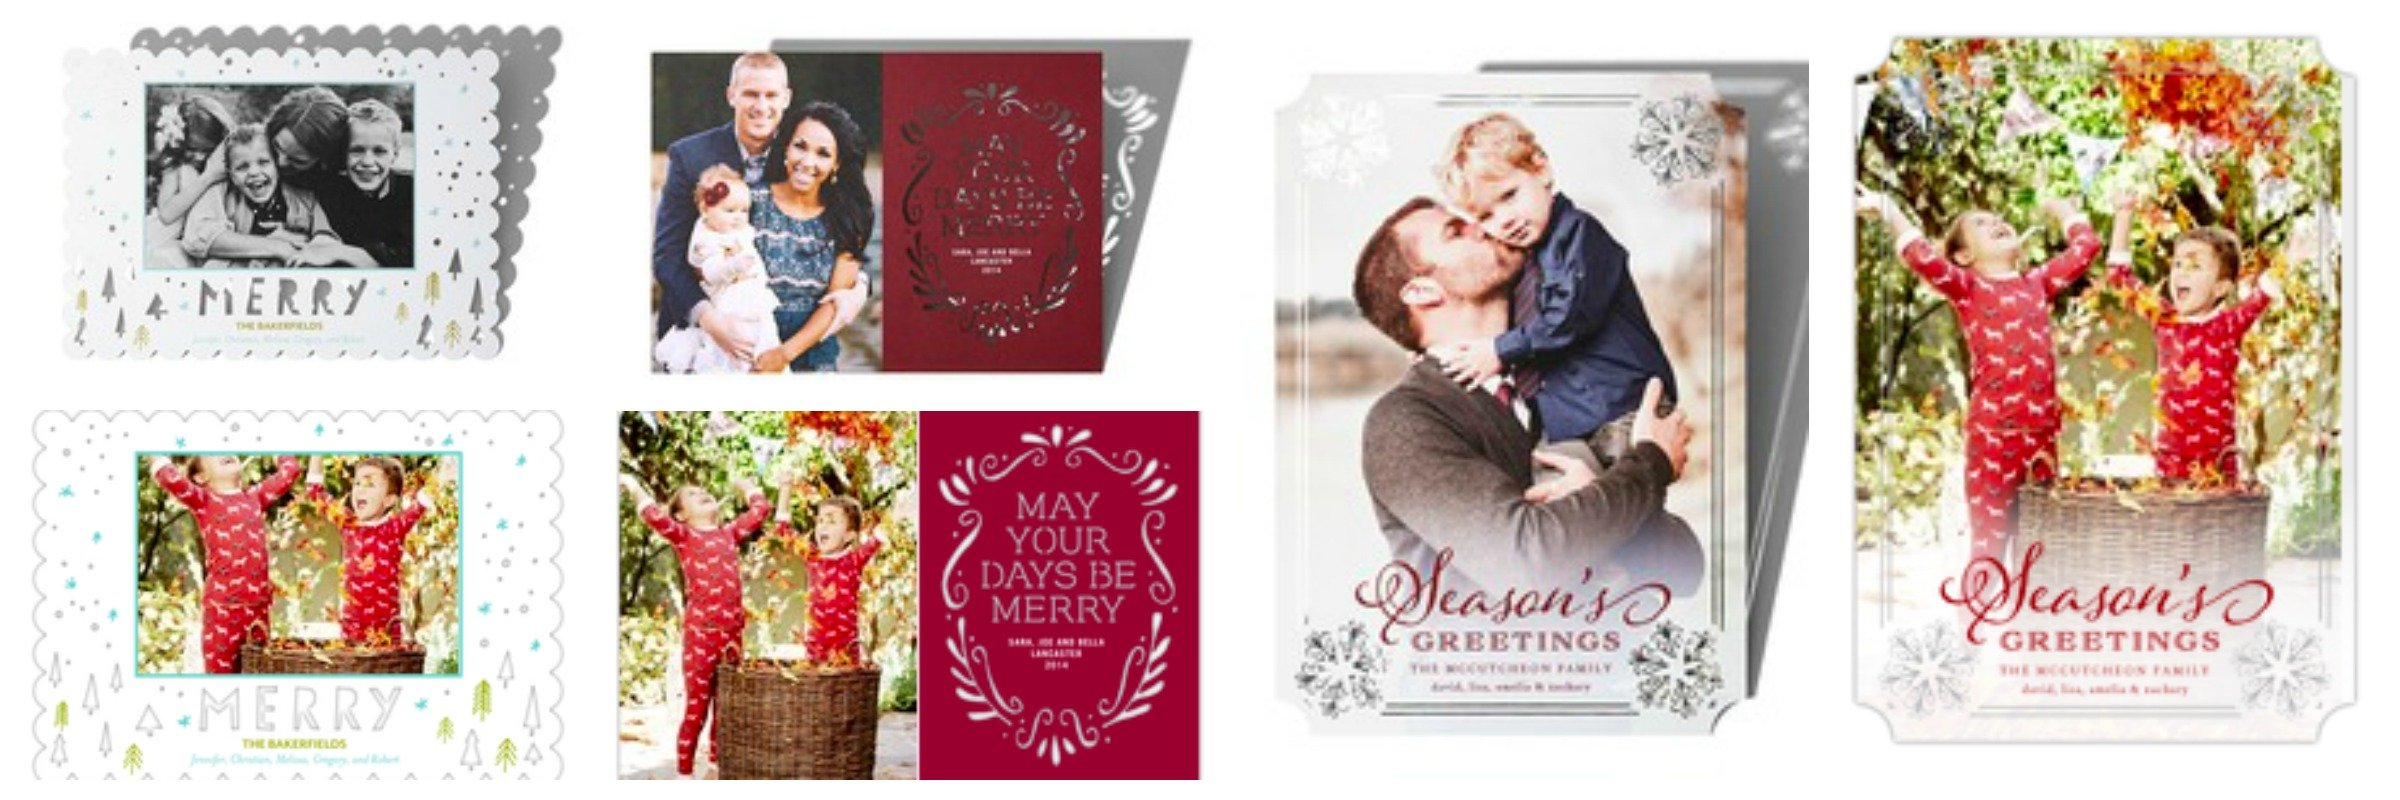 Holiday Card Insert Photo Feature, Best Holiday Cards